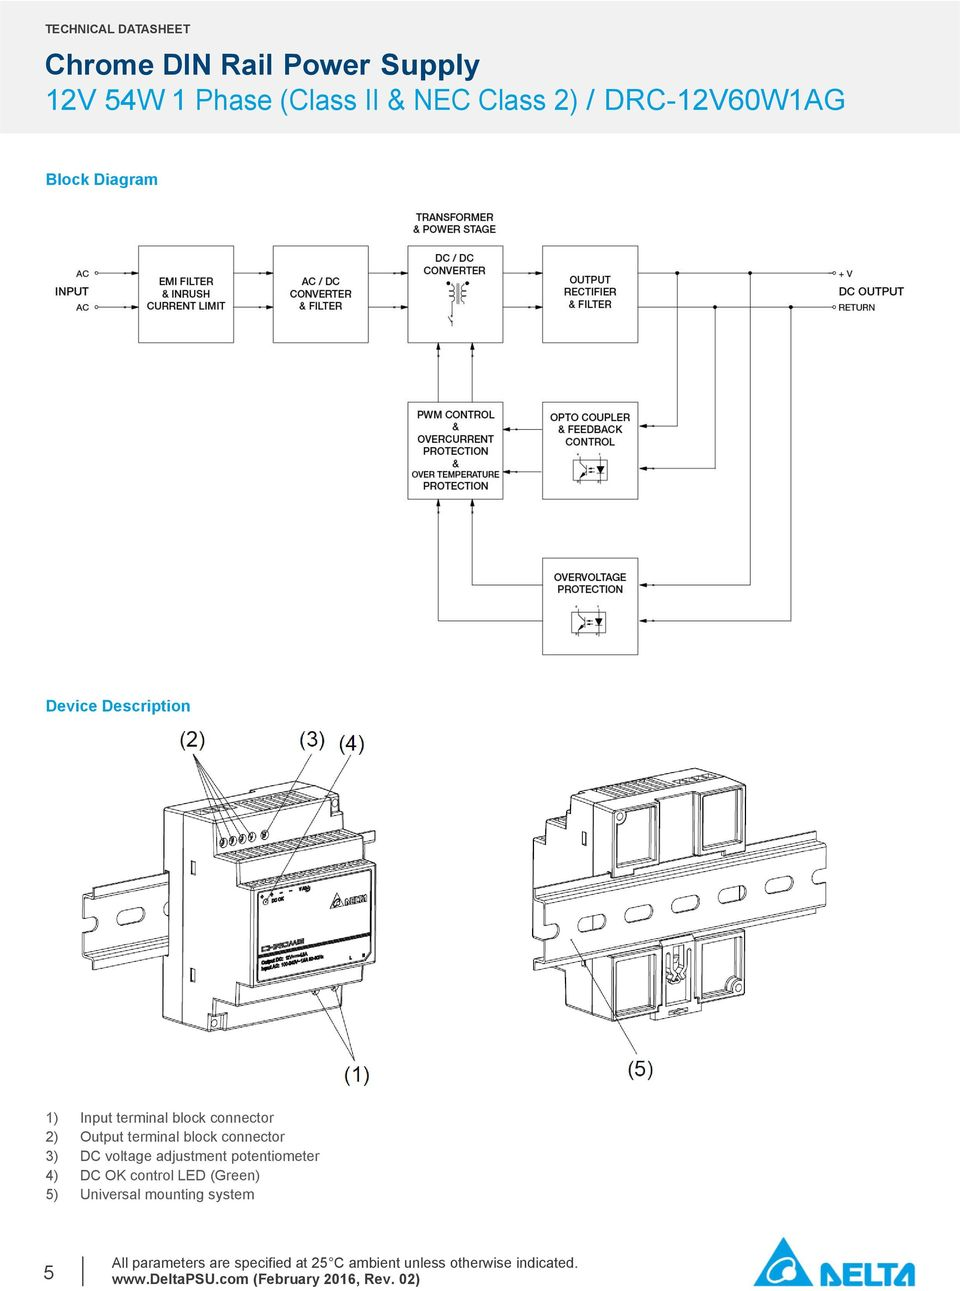 Ps104 12v Power Supply Circuit Diagram Electrical Wiring Diagrams Ac To Dc Chrome Din Rail 54w 1 Phase Class Ii Nec 2